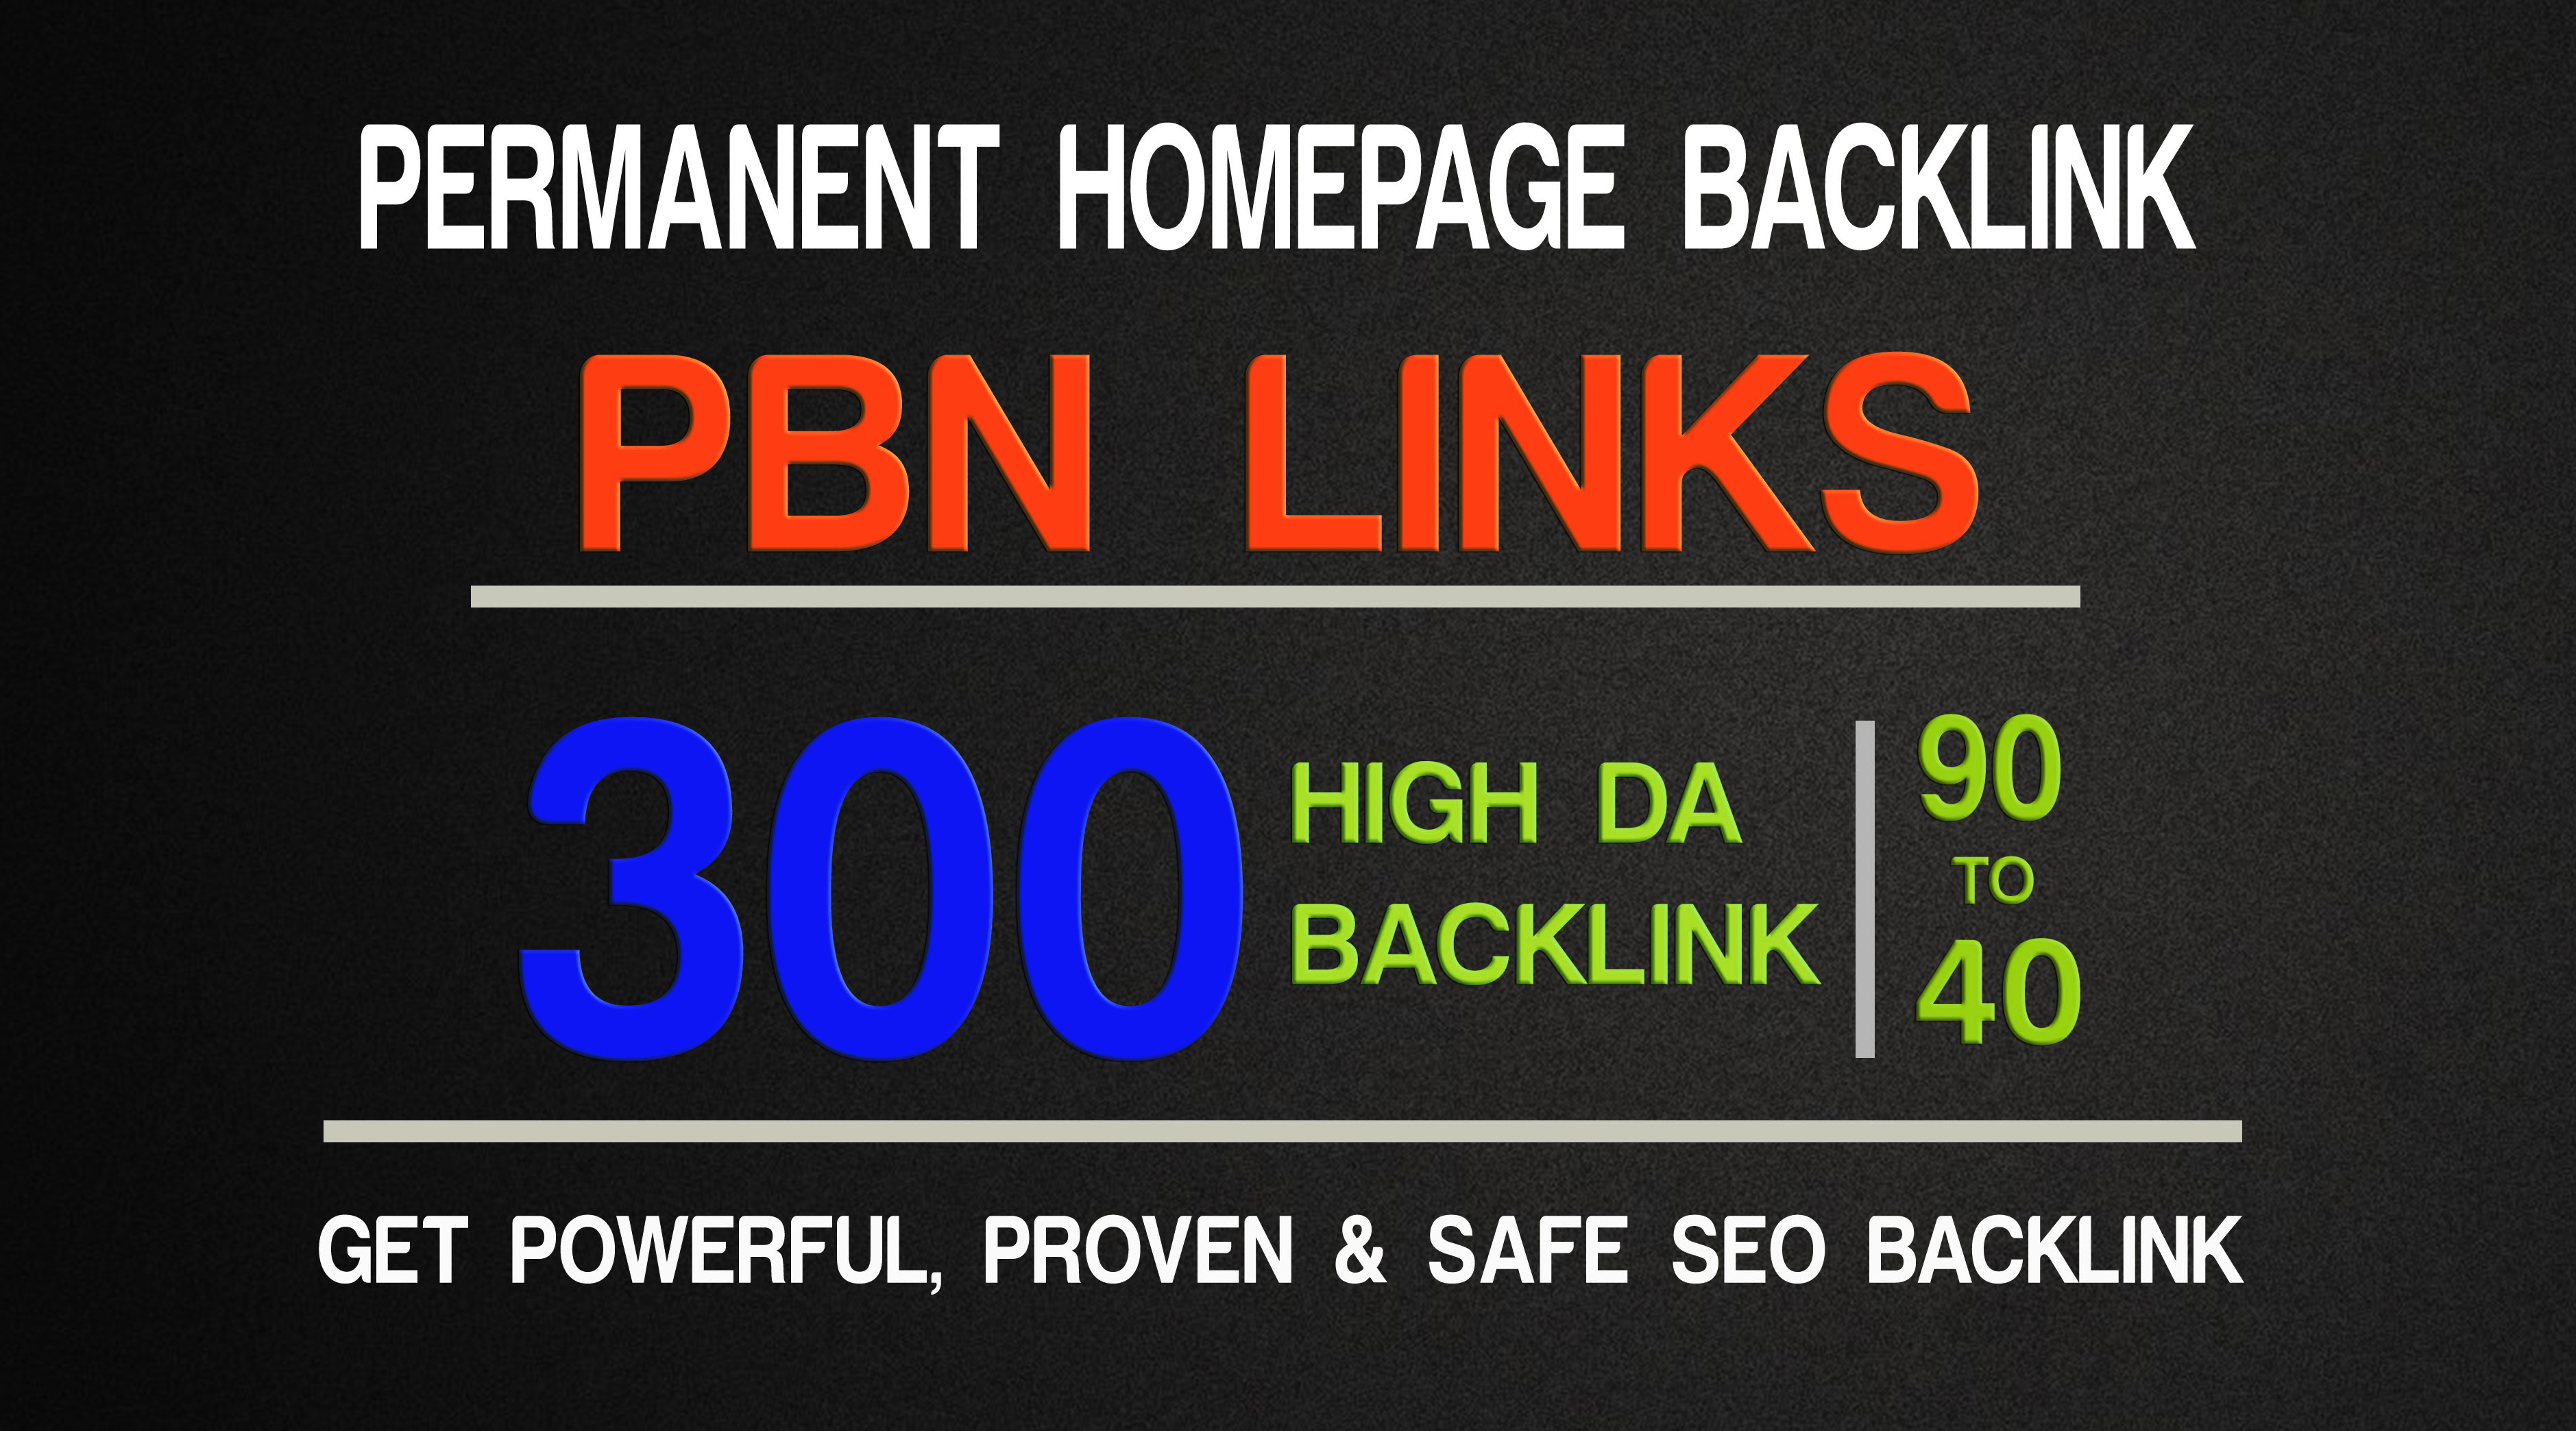 Get Powerfull 300 PBN parmanent Backlink with High DA/PA on your Homepage with one of a kind site